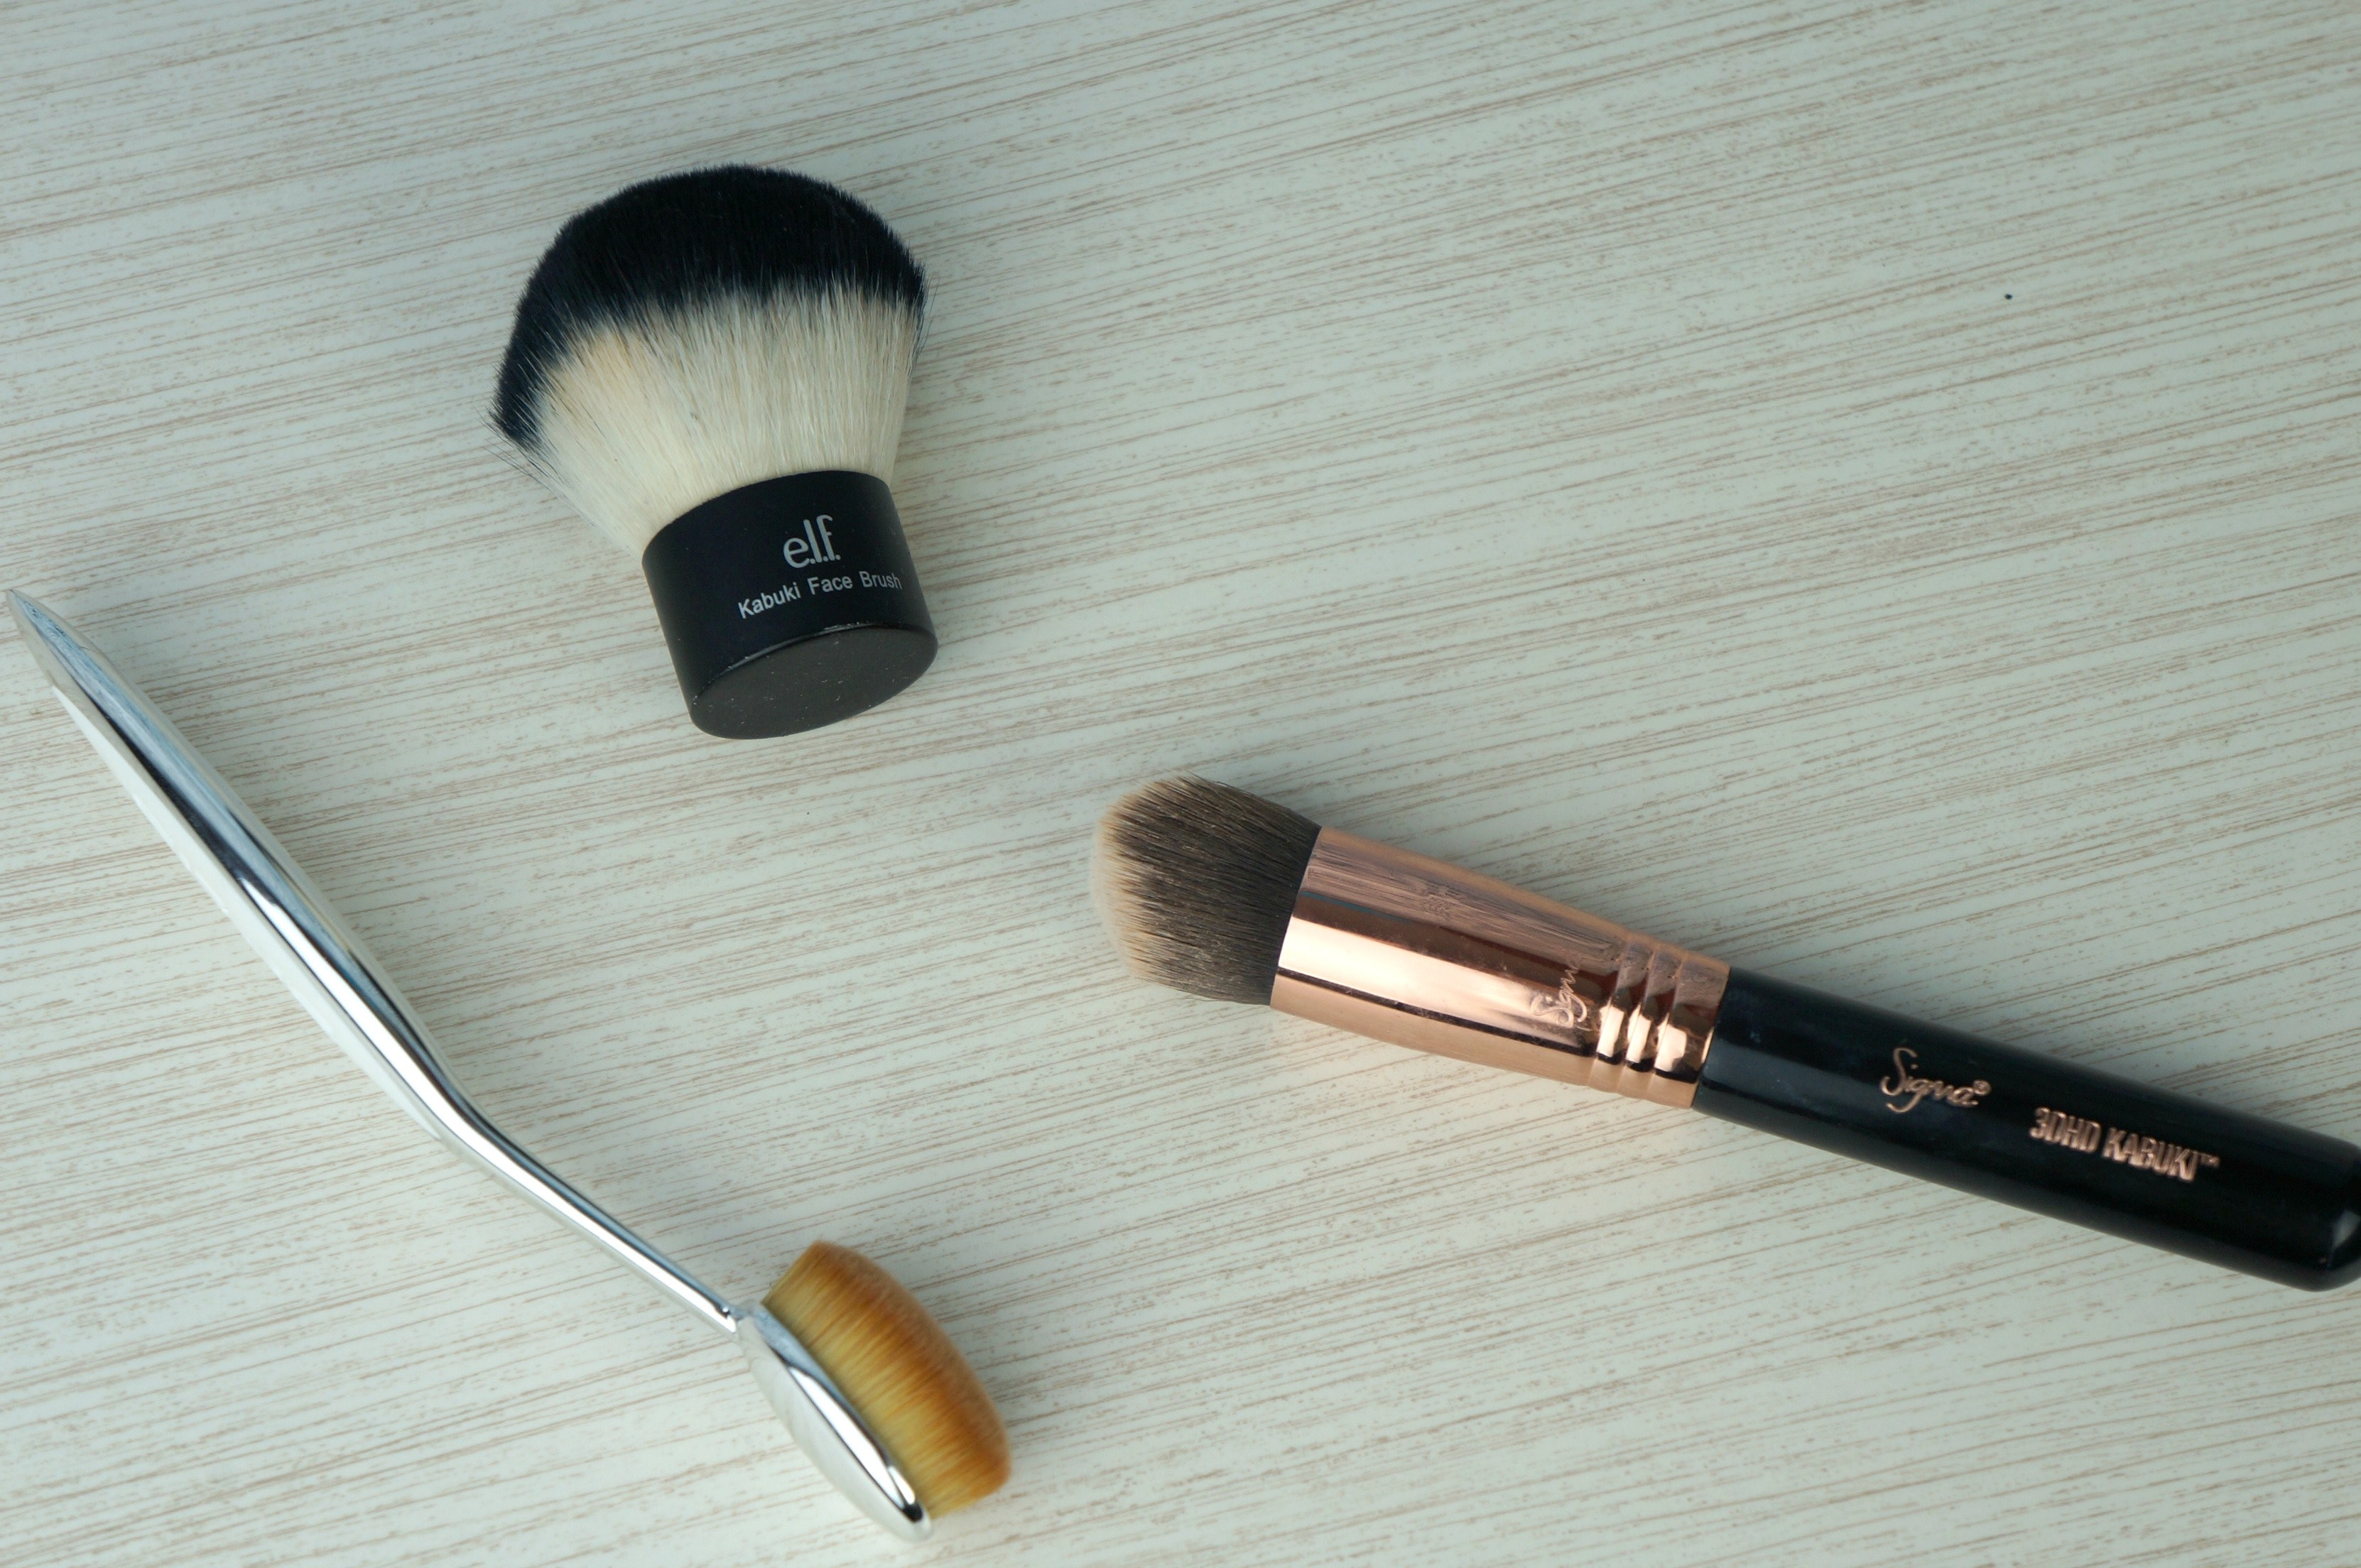 I Tried Cheap Versus Expensive Makeup Brushes This Is What Happened